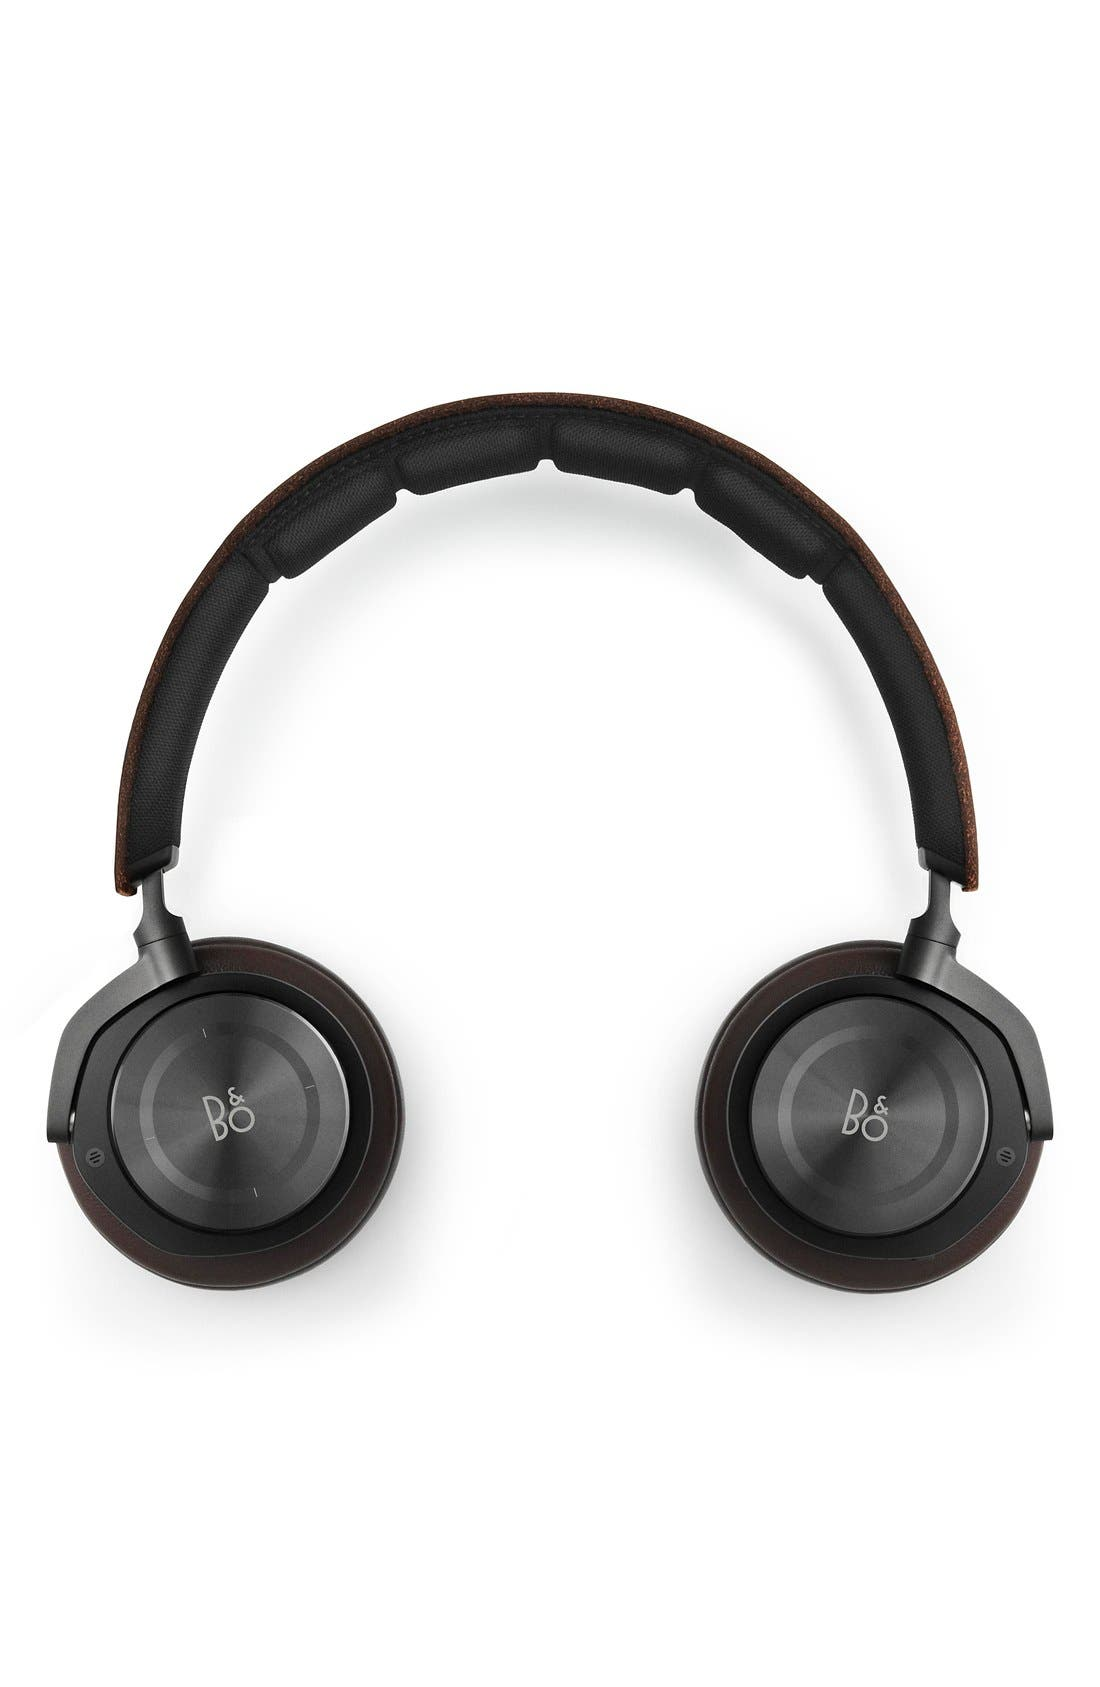 H8 ANC Over-Ear Bluetooth<sup>®</sup> Headphones,                             Alternate thumbnail 6, color,                             206